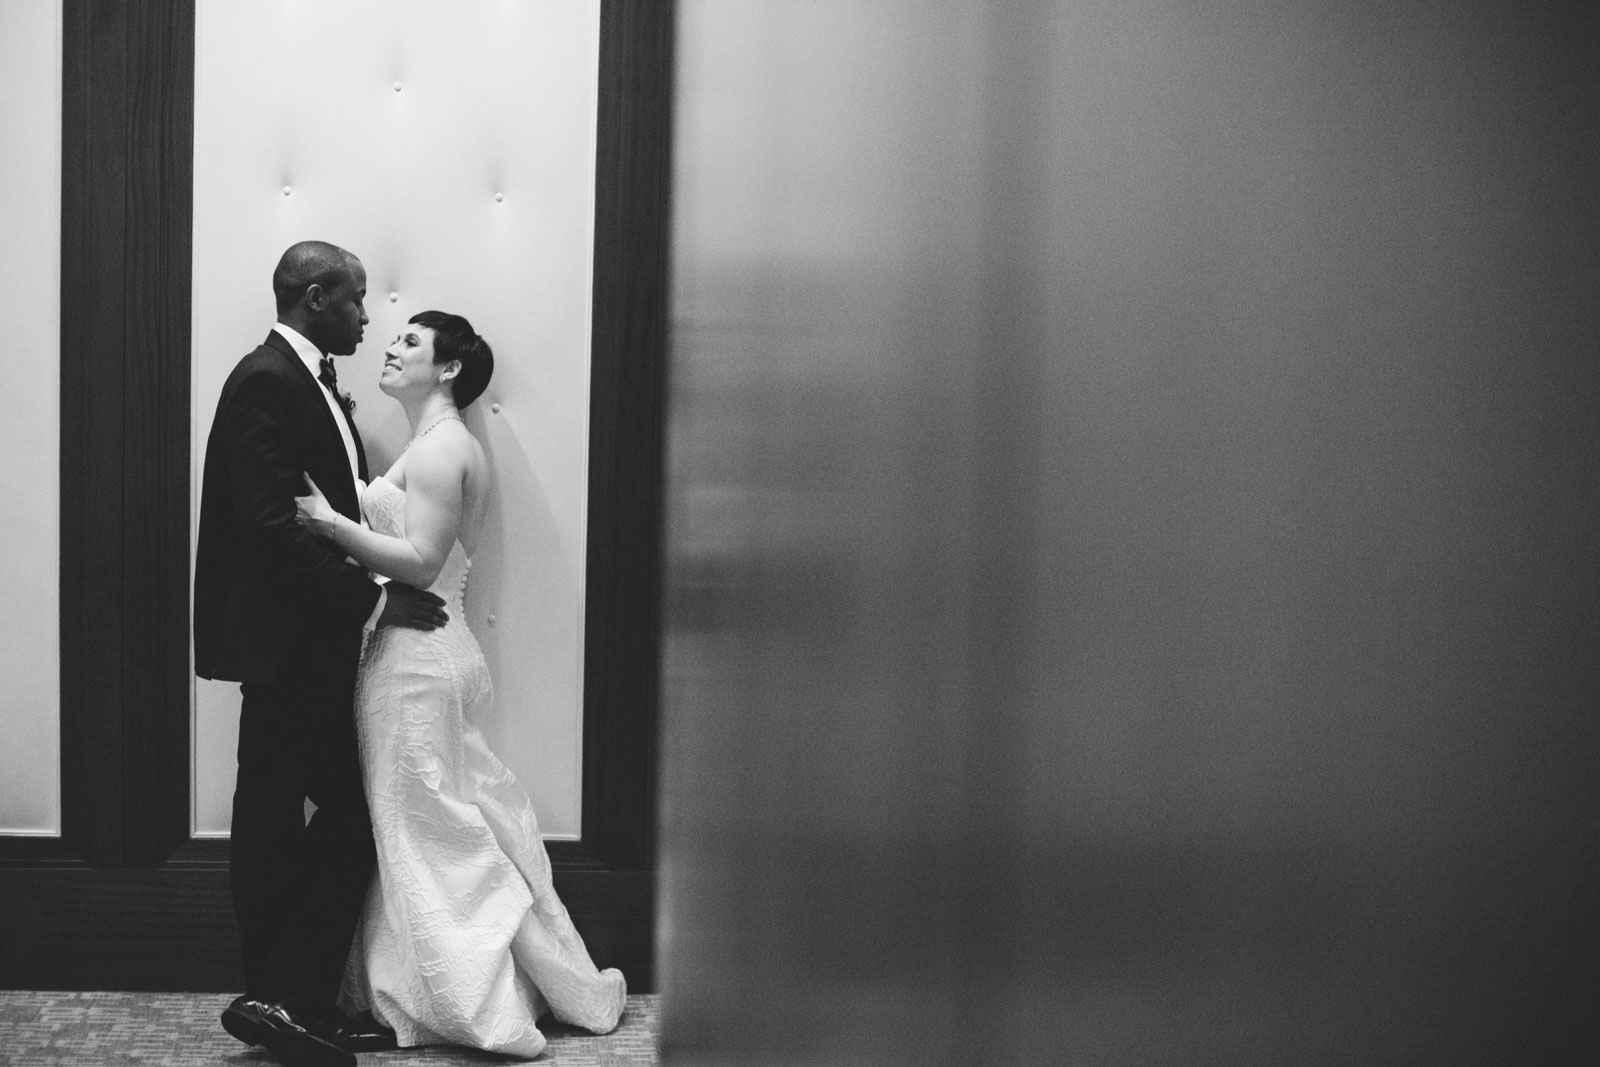 Black and white portrait of bride and groom holding each other close after their interracial wedding